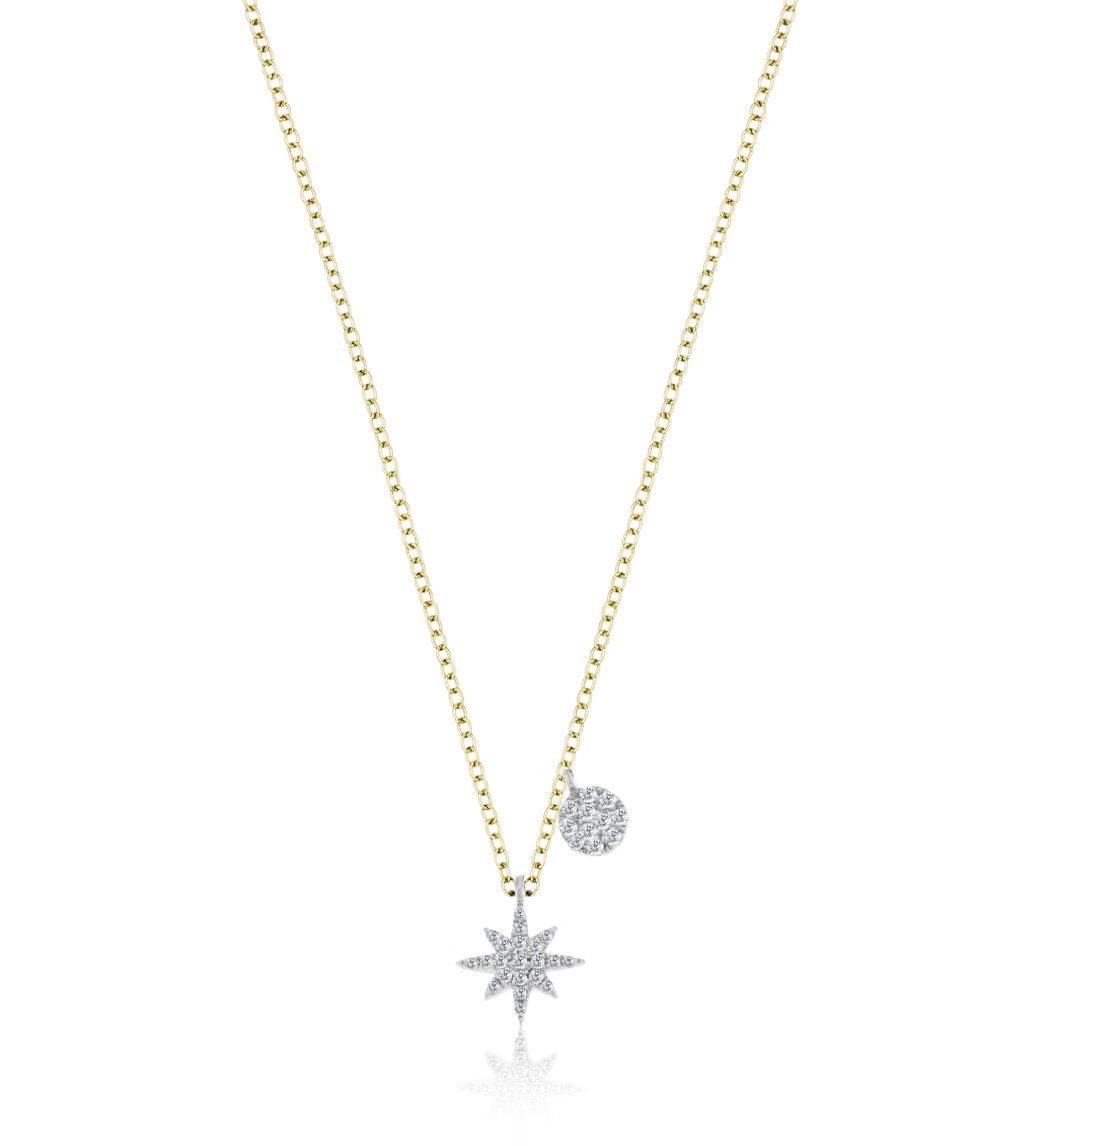 N11967 Starburst Diamond Necklace